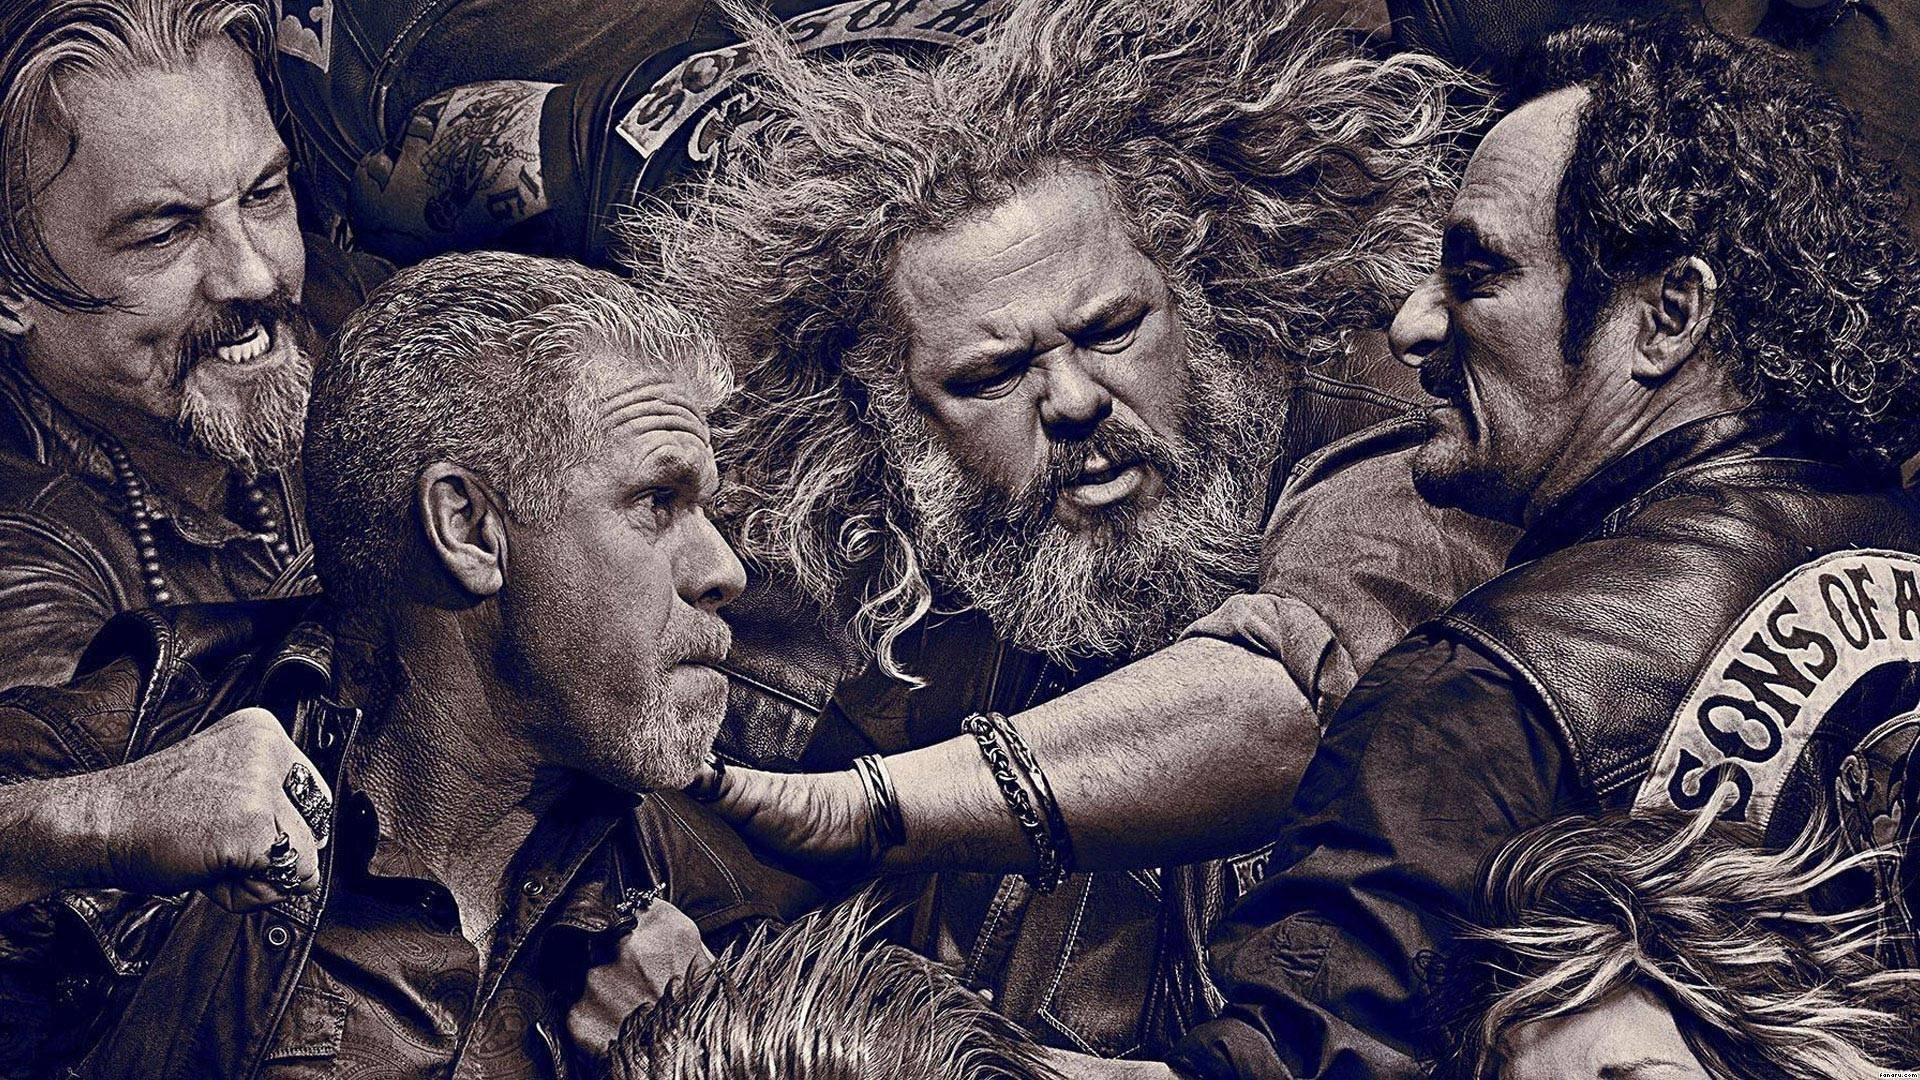 Free sons of anarchy high quality wallpaper id187580 for full hd free sons of anarchy high quality wallpaper id187580 for full hd desktop voltagebd Choice Image